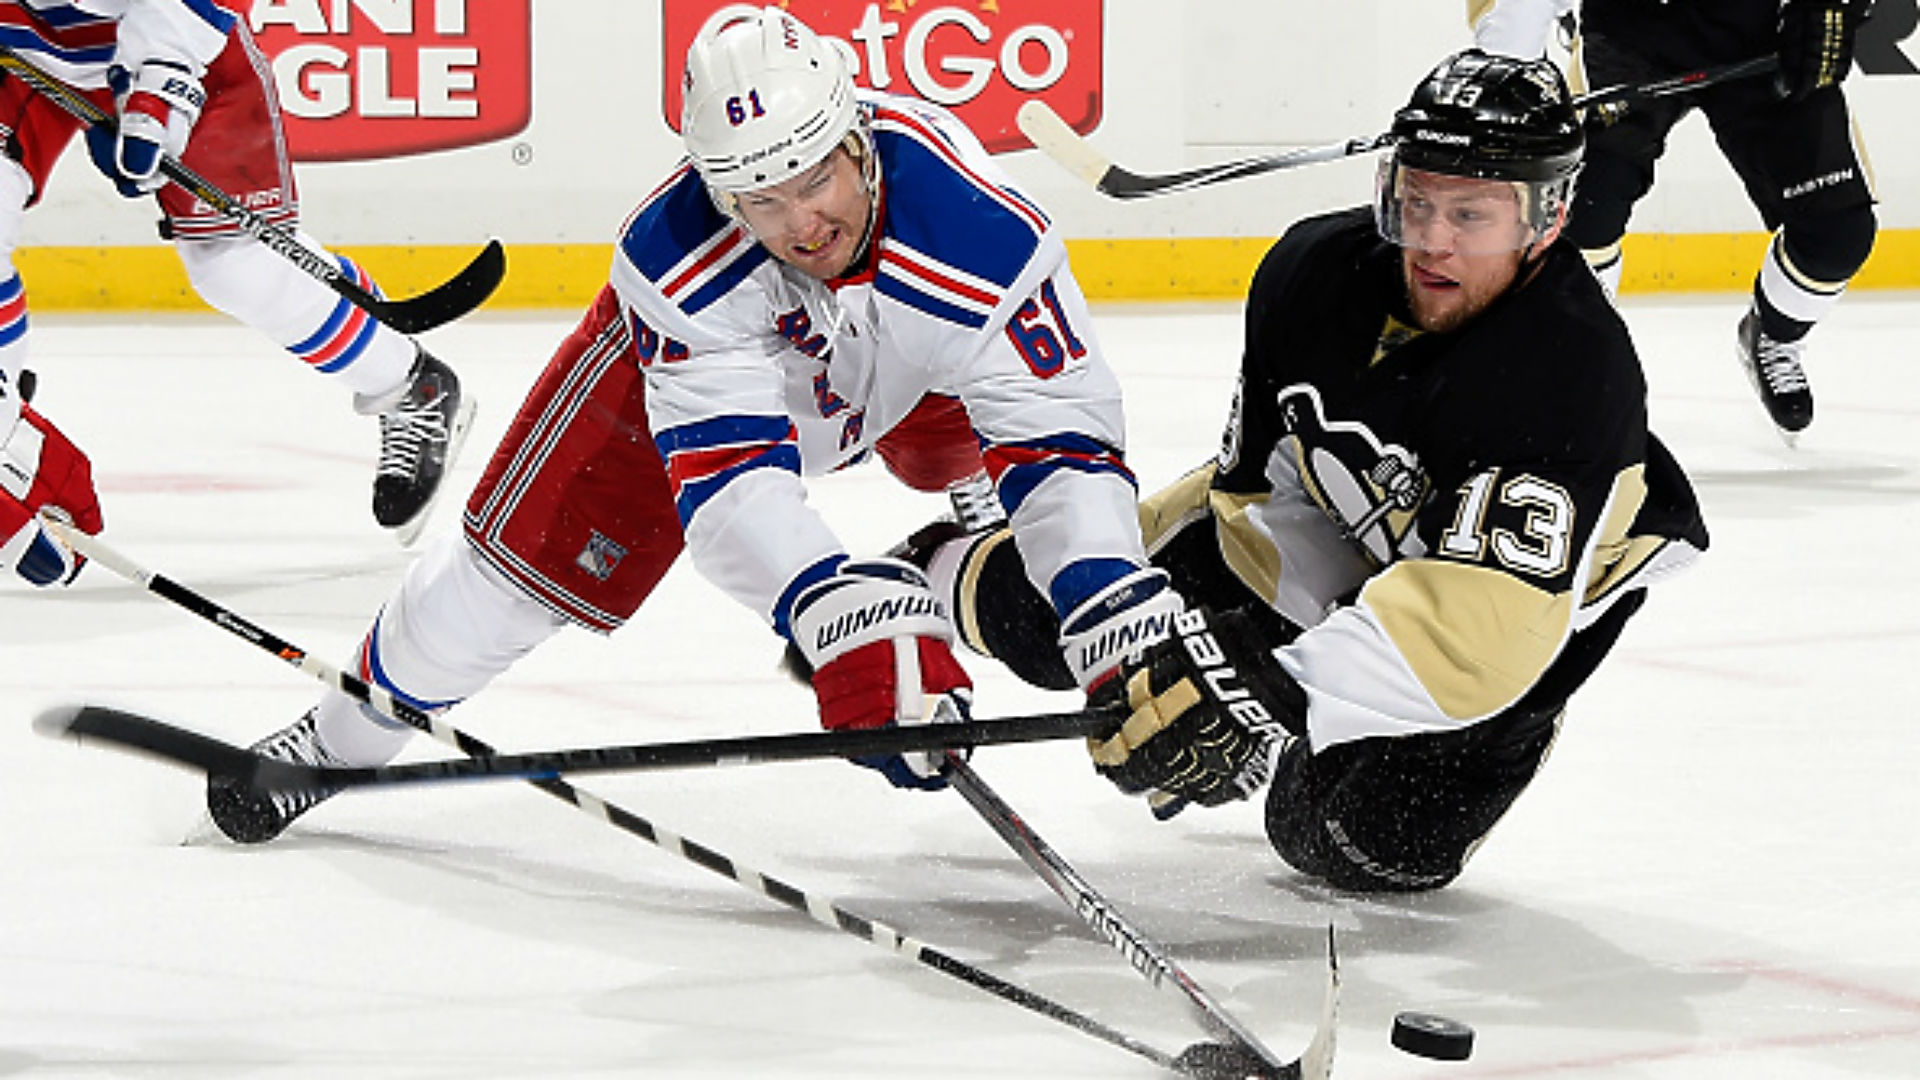 Stanley Cup playoffs: Penguins' slow start, Game 3 loss isn't just about them